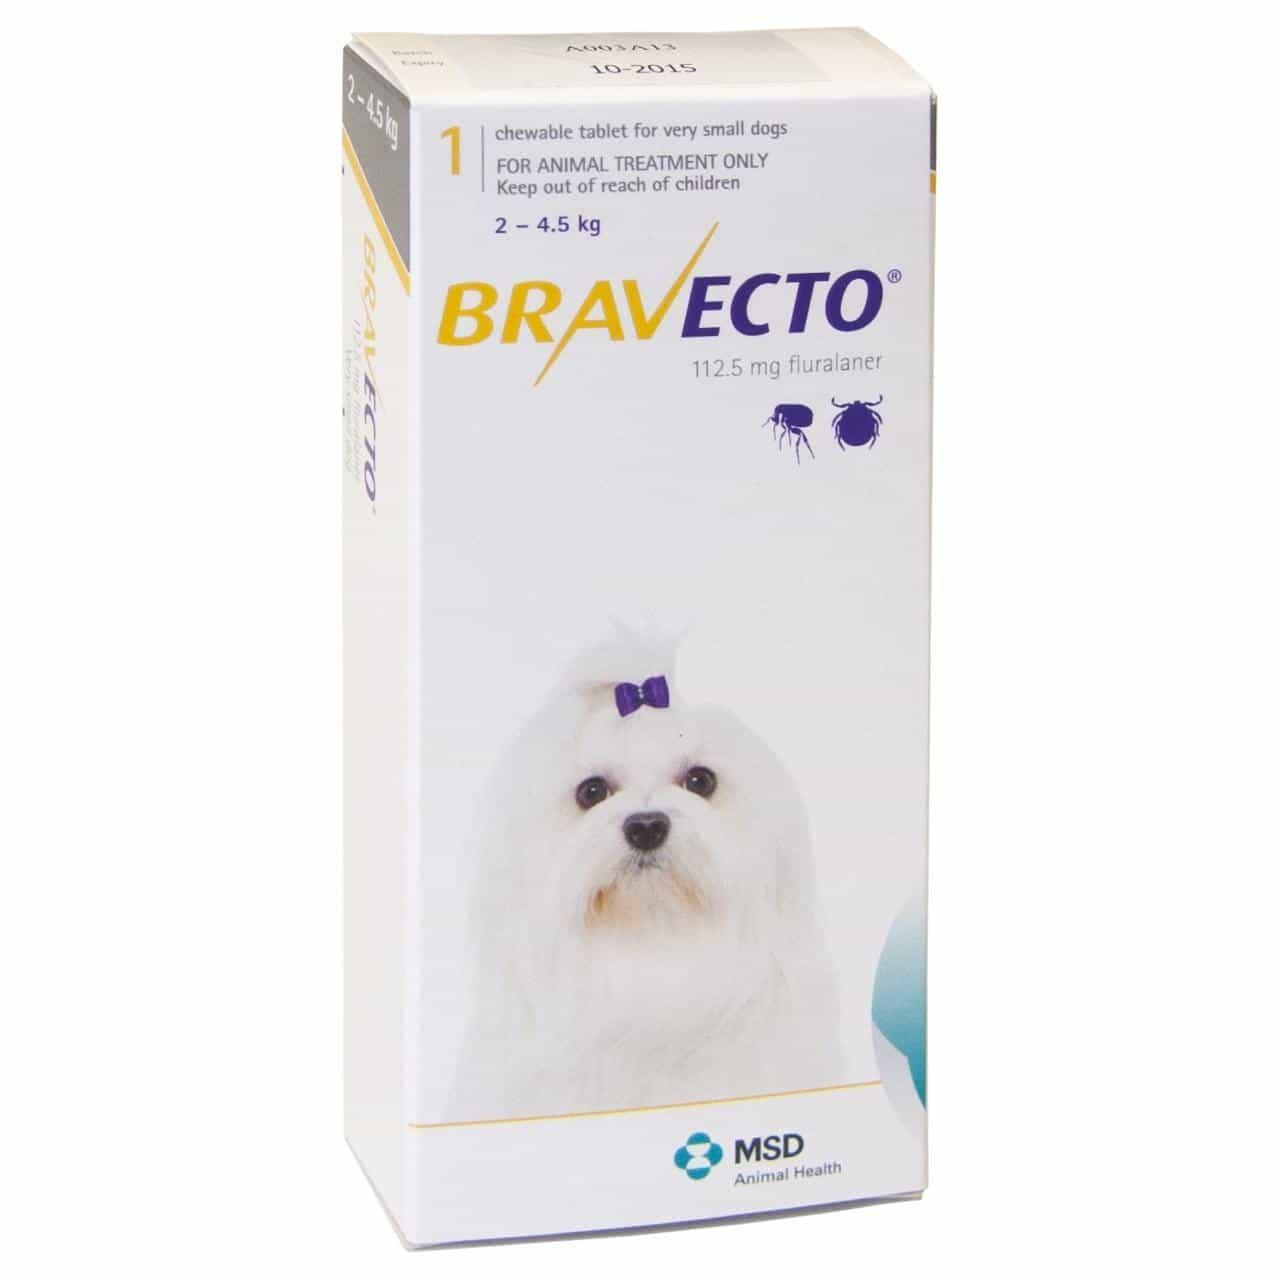 BRAVECTO Bravecto Flea Treatment for Extra-Small Dogs (2-4.5kg)